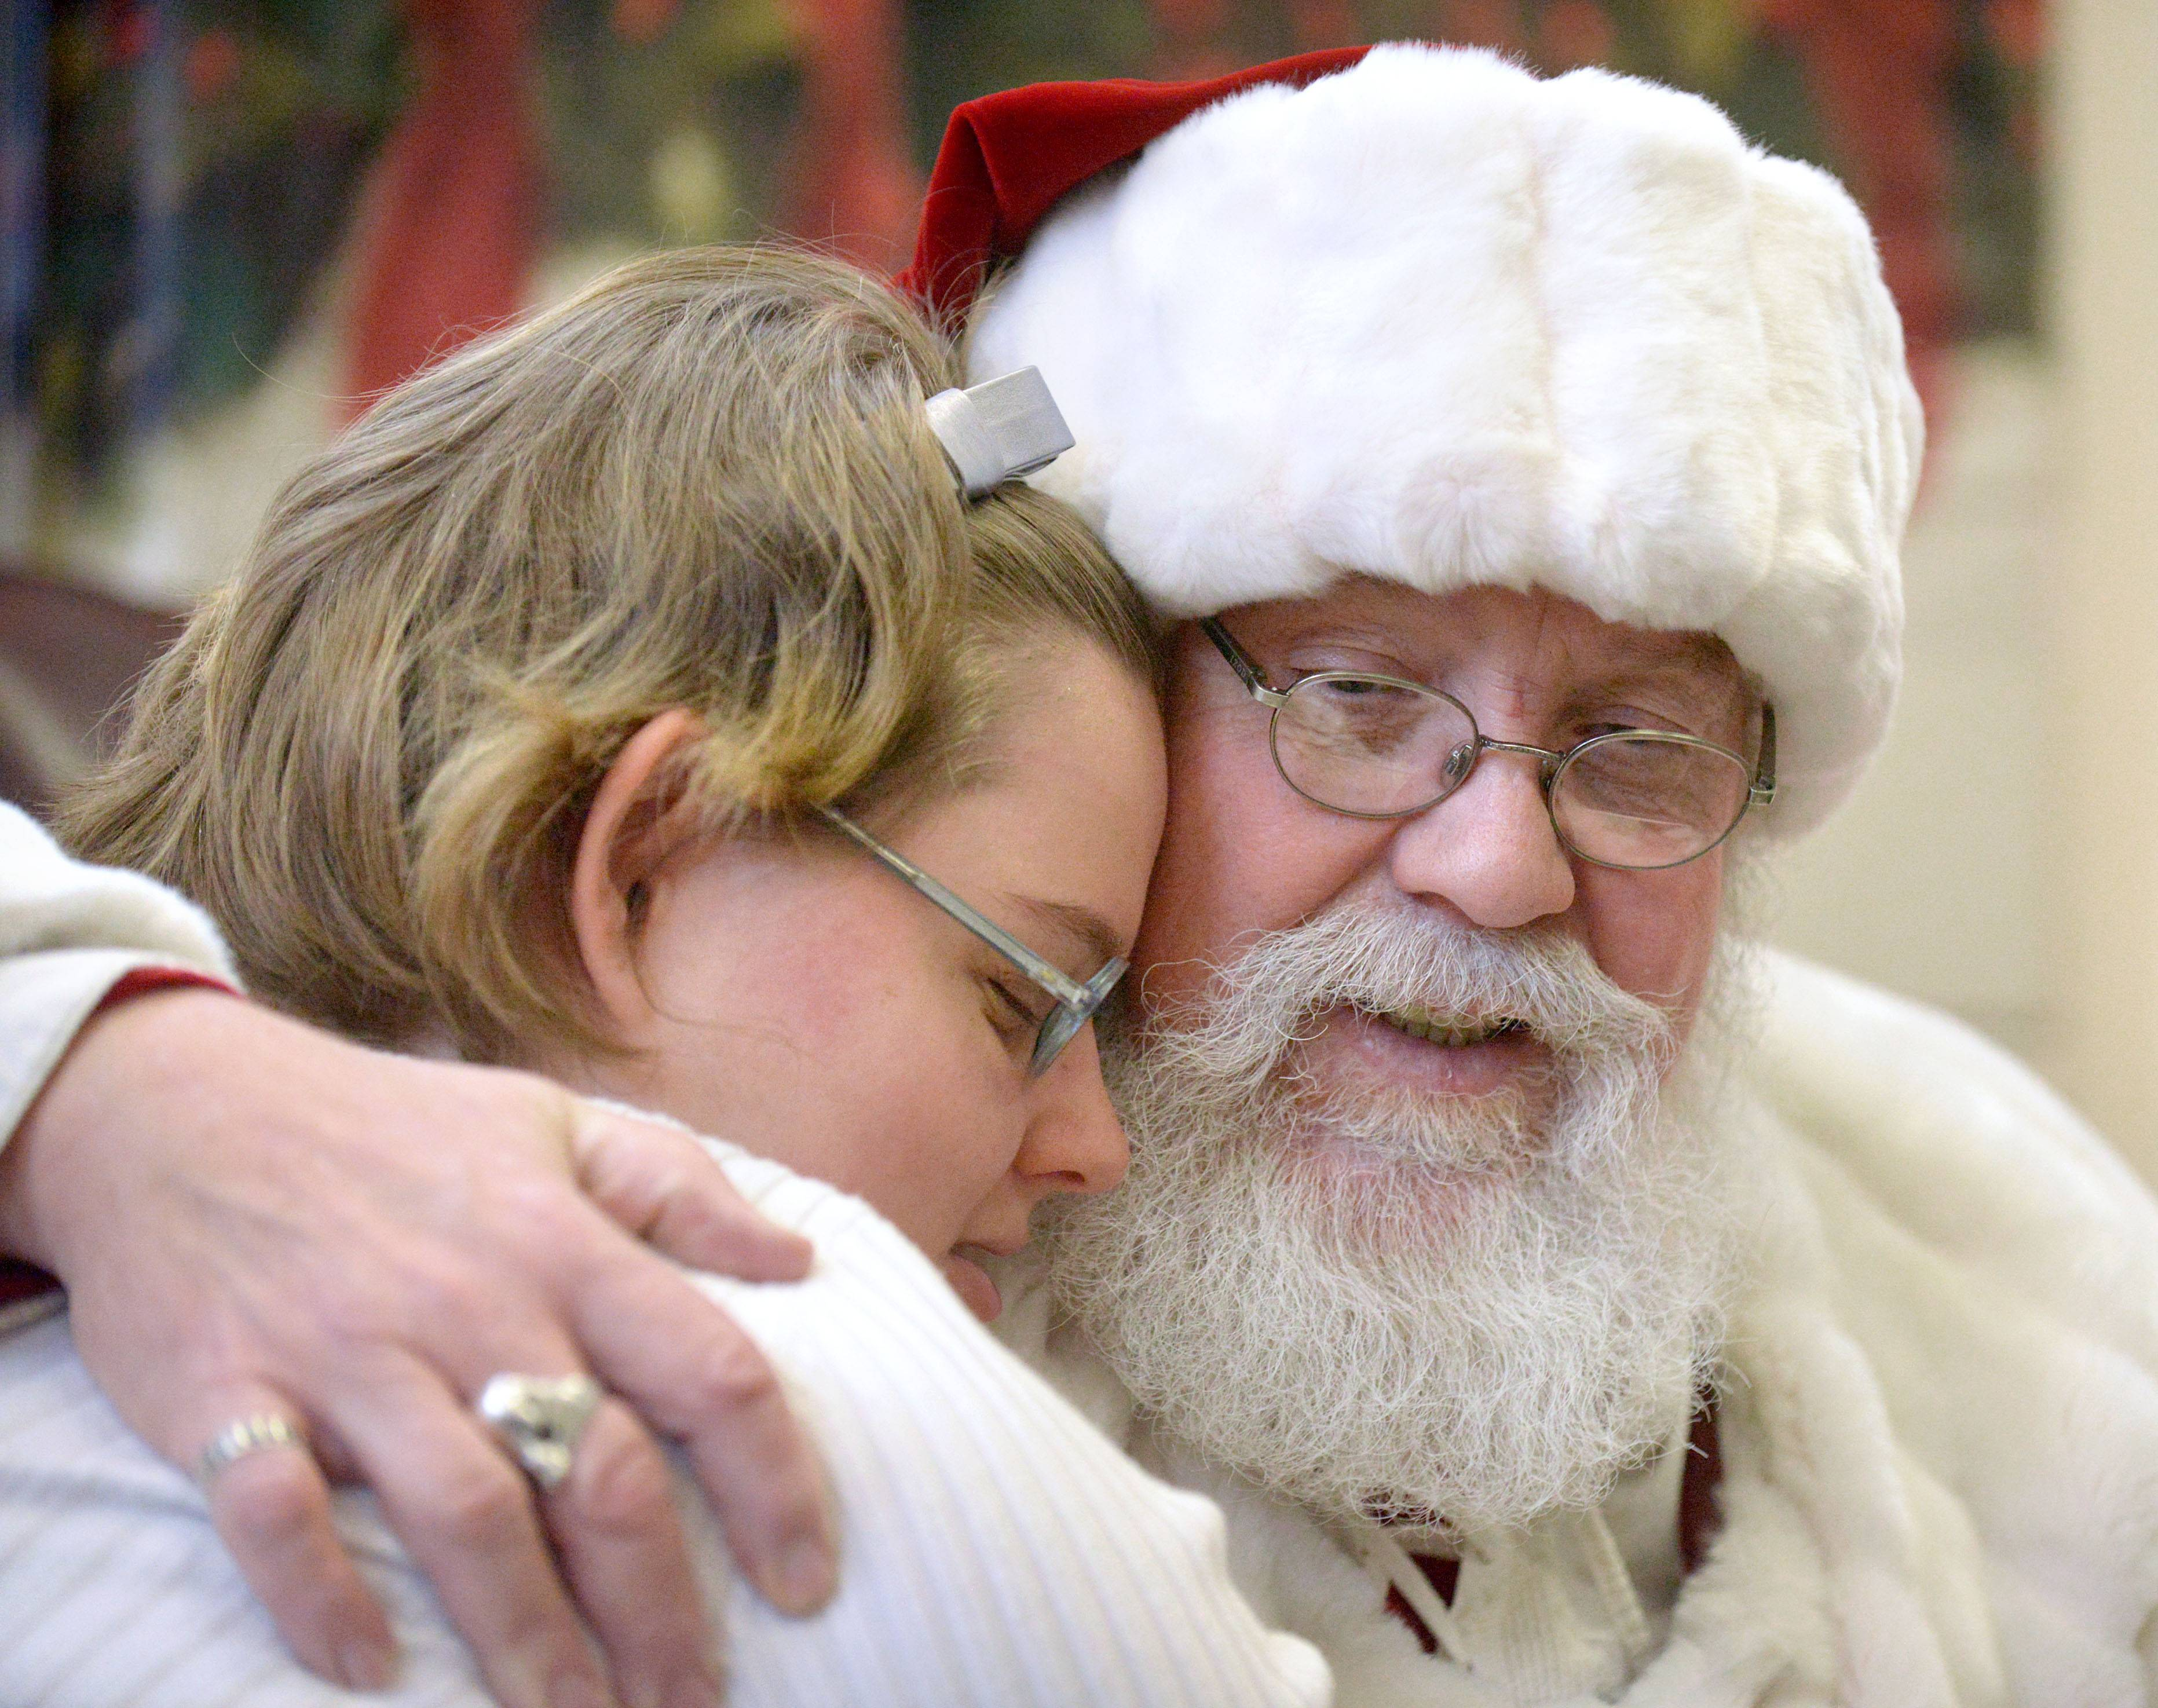 "Sydney Gajewski, 19, of South Elgin hugs Santa (school bus driver Greg Stout of Elgin) after telling him her wish list during his visit Wednesday to South Elgin High School. Her wish was ""Good health and peace for all."""